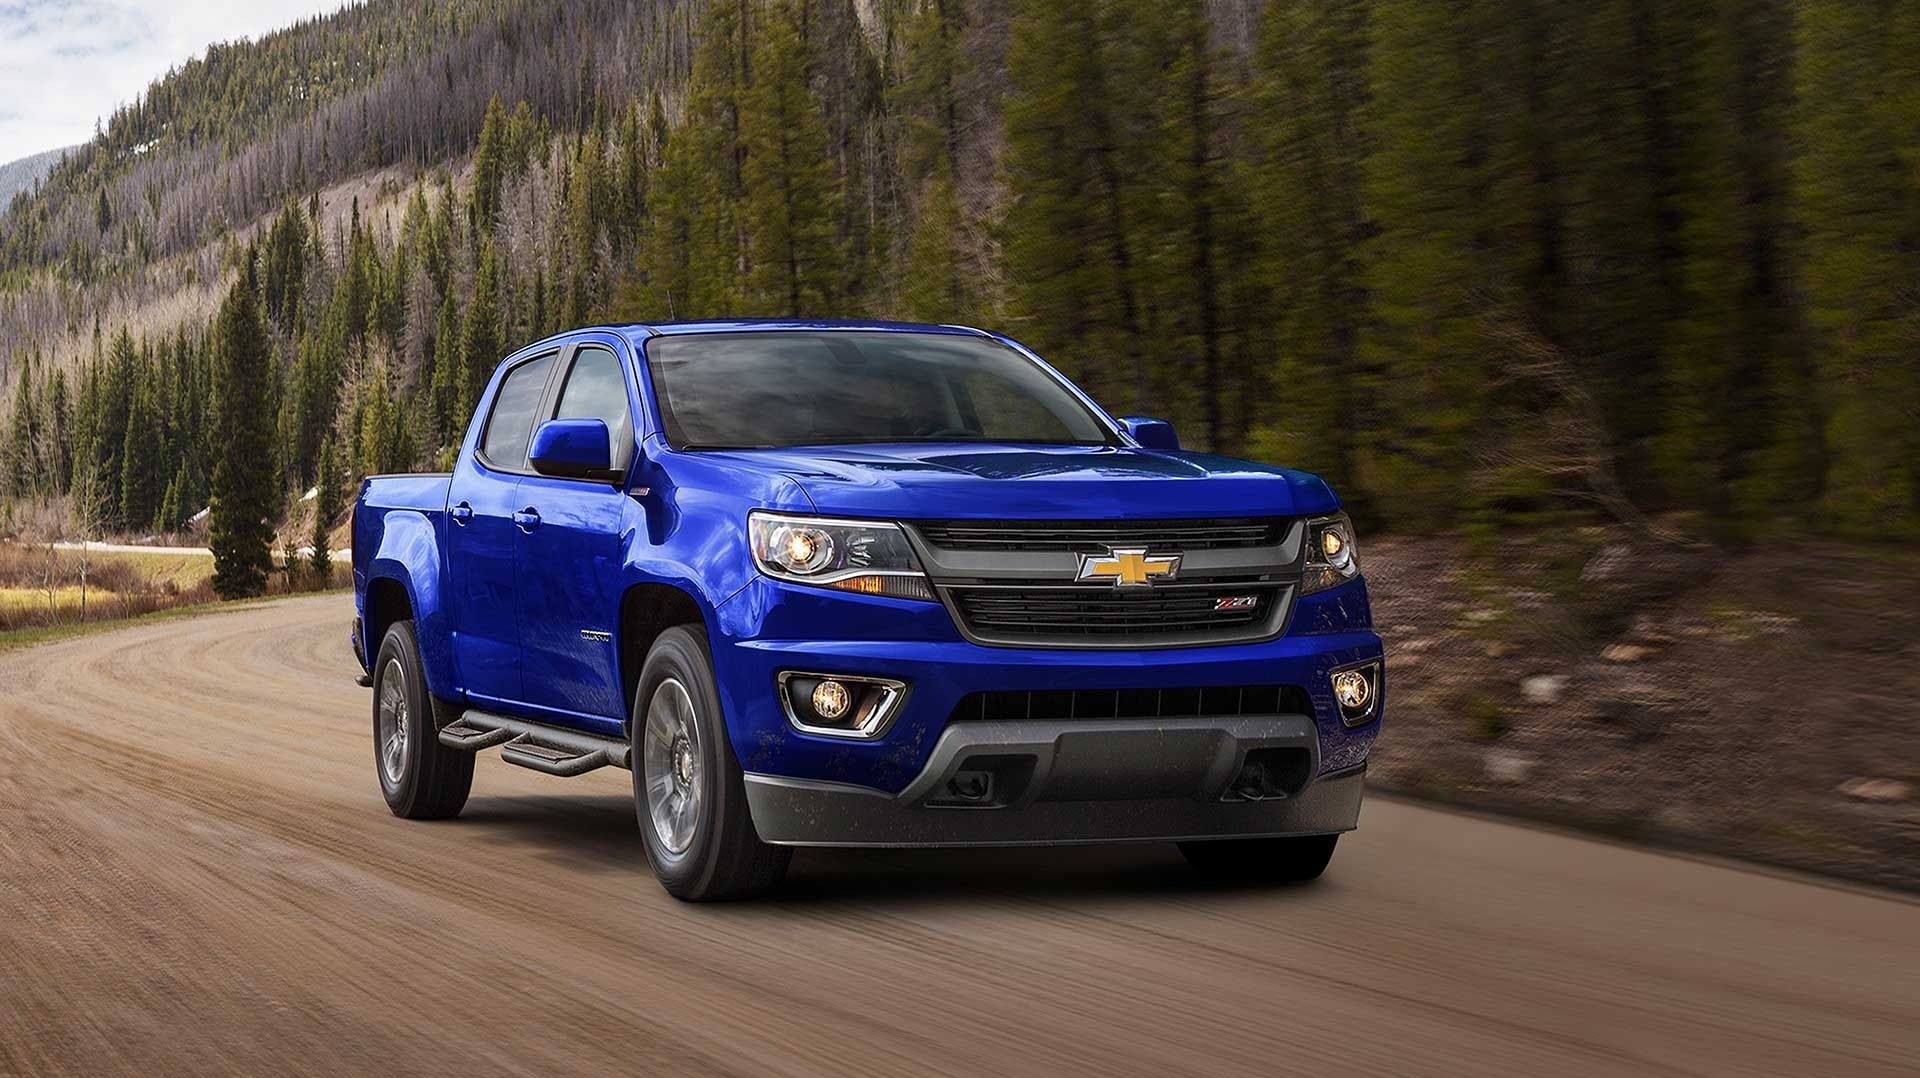 chevy used car the dealership patriot dealer king a pa limerick tahoe callaway new chevrolet dealers in and is